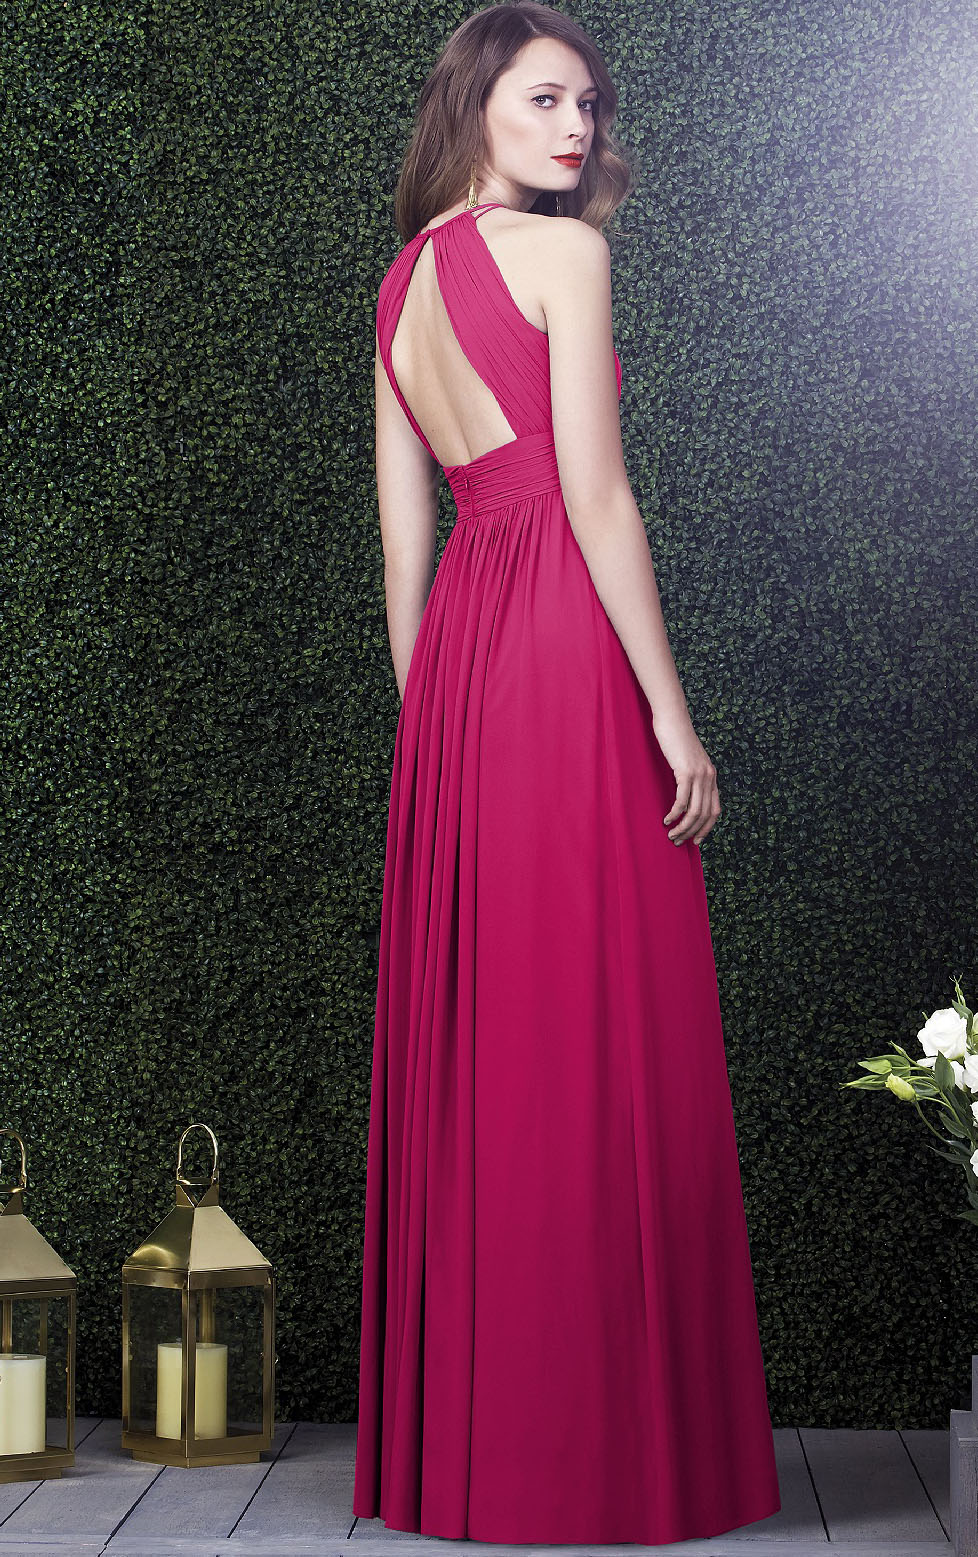 Backless Sleeveless Floor-length Natural Chiffon Bridesmaid Dresses_2